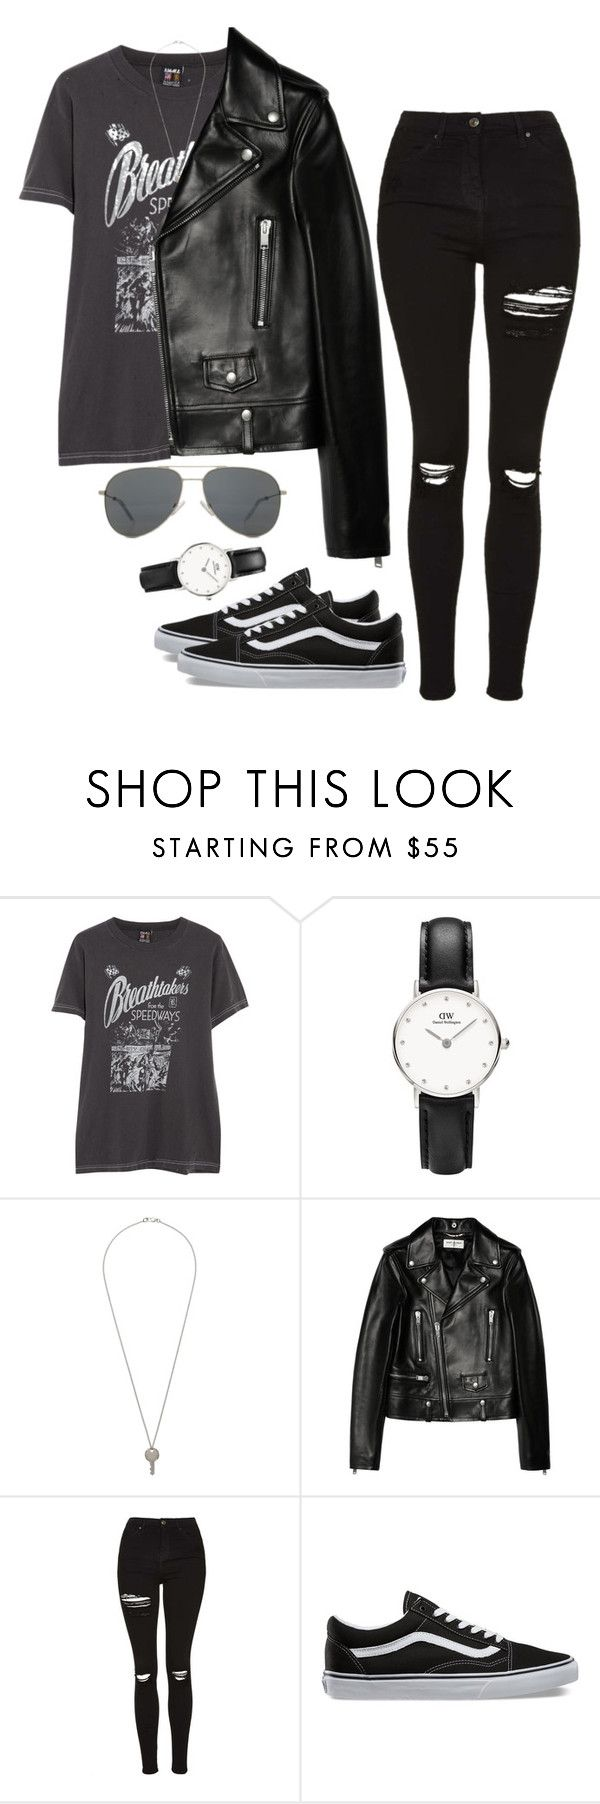 """""""Untitled #23"""" by ijustwanttobe ❤ liked on Polyvore featuring Yves Saint Laurent, Topshop and Vans"""